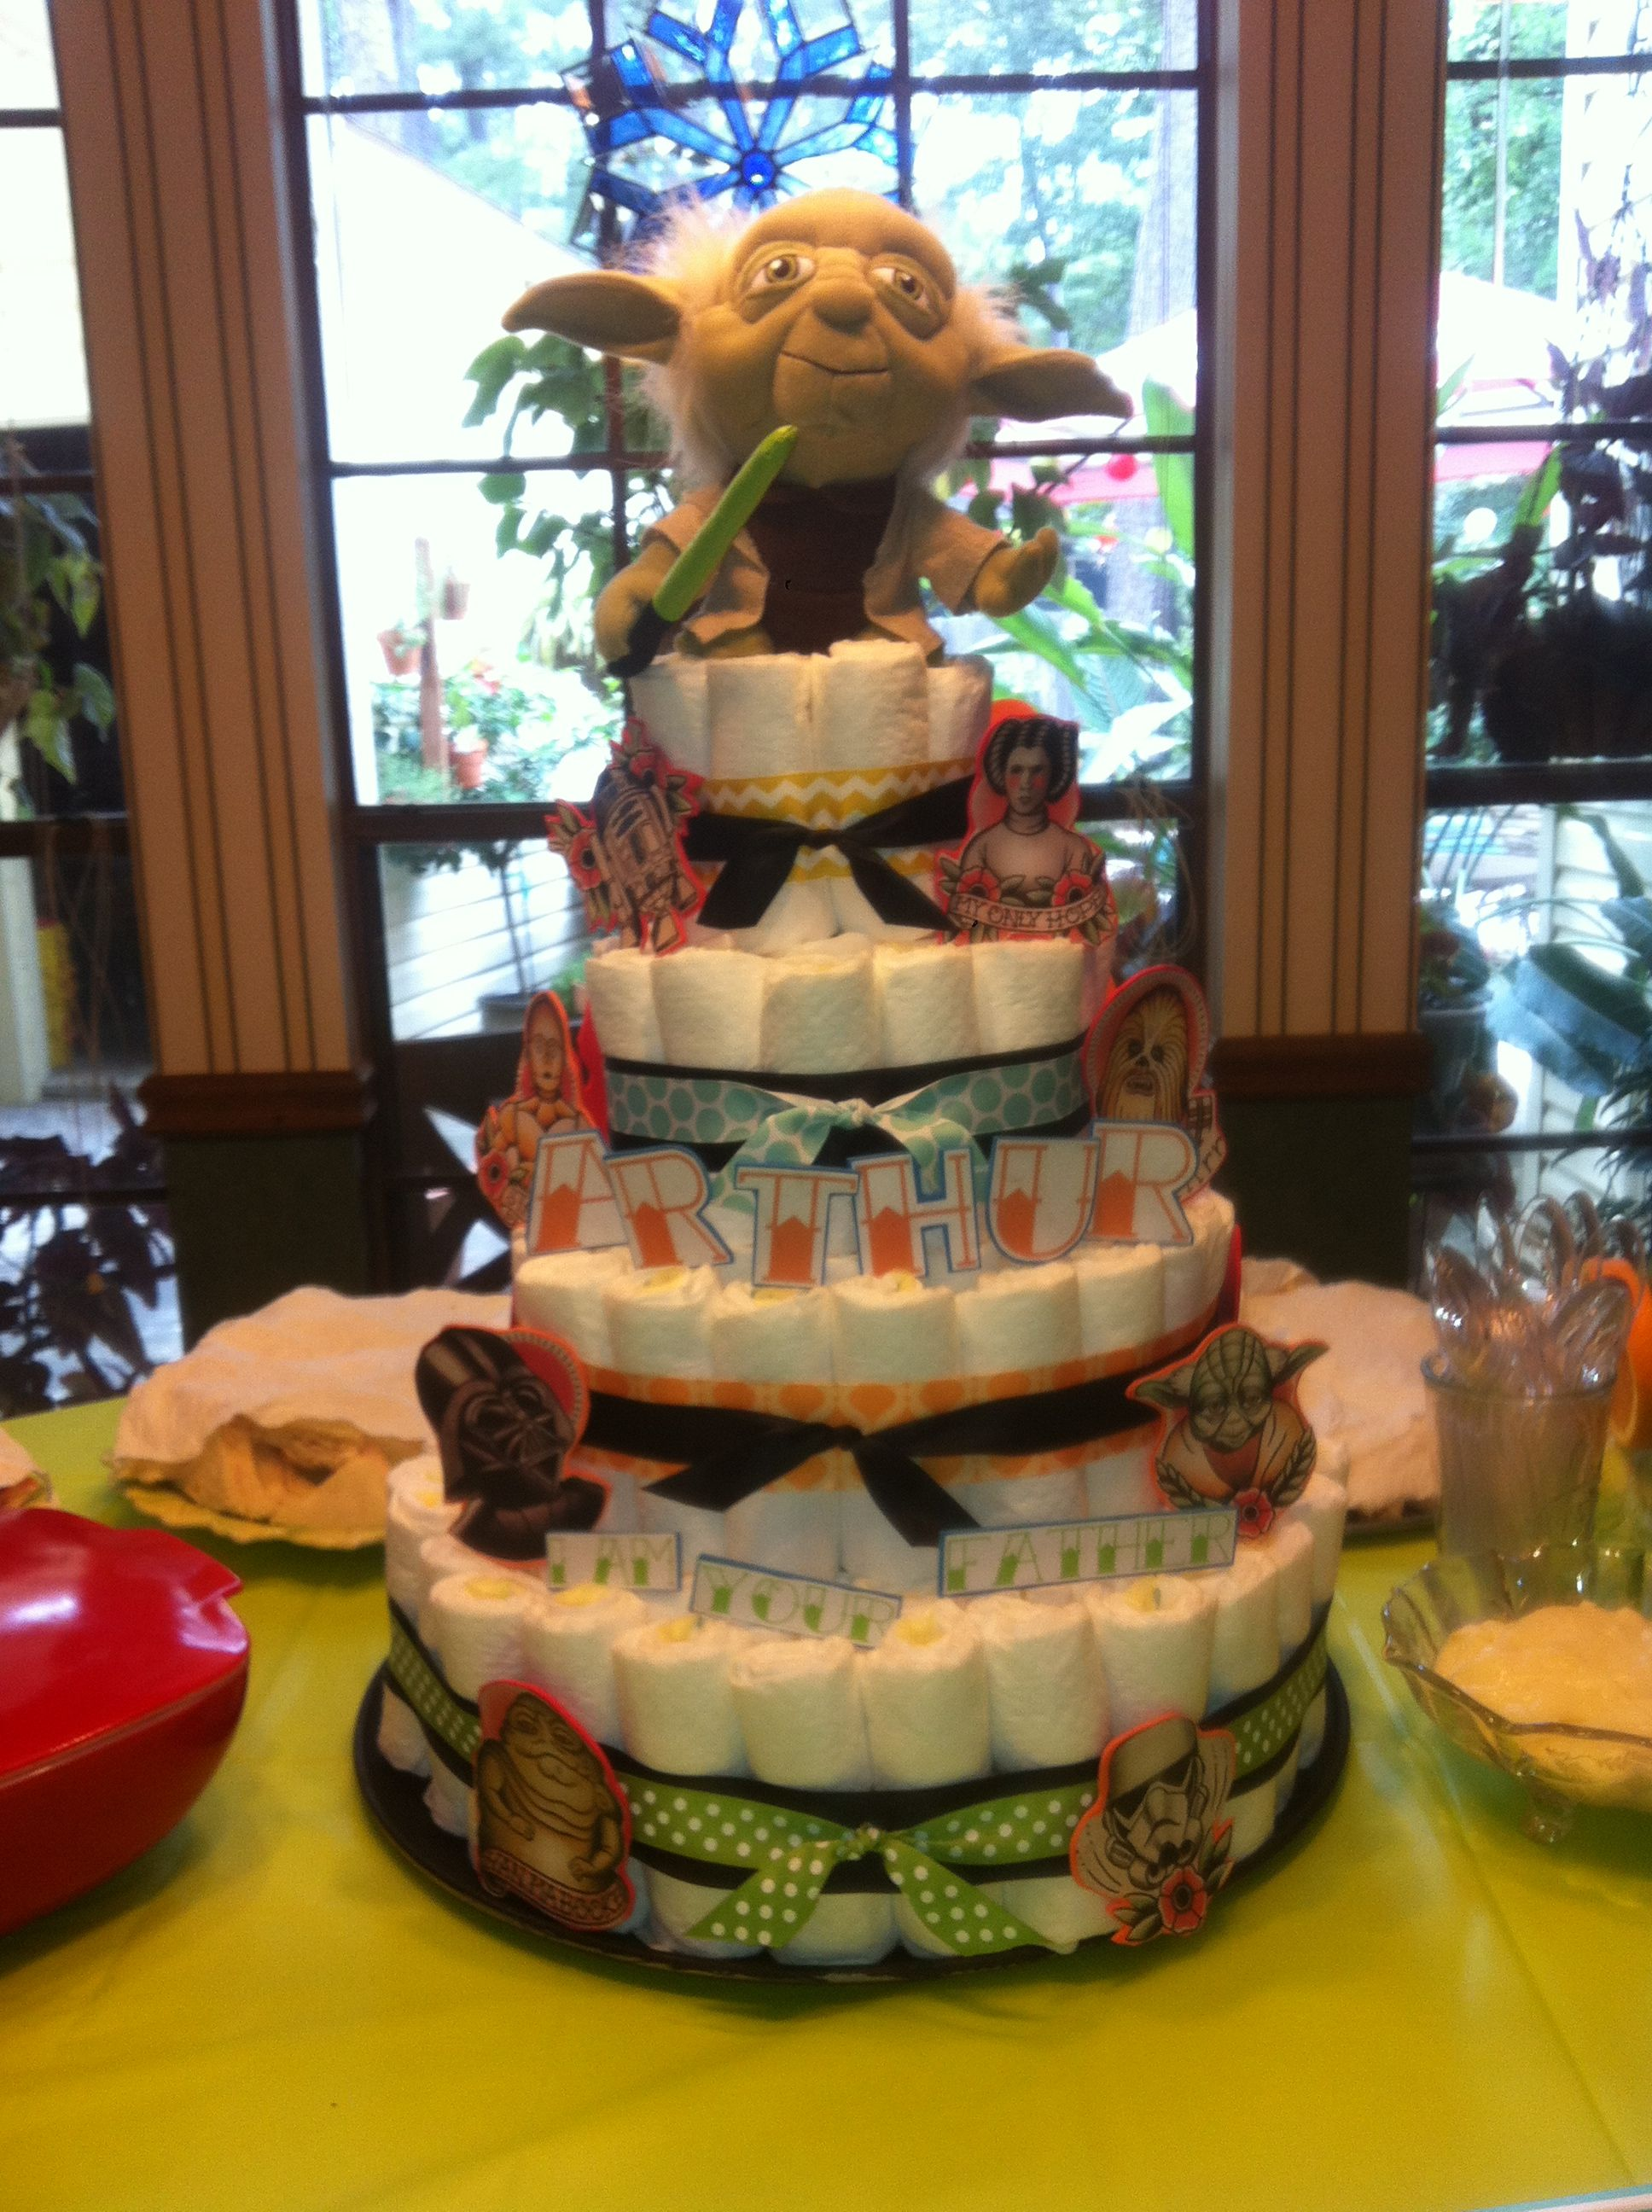 A diaper cake I made for a colorful Star Wars themed baby shower